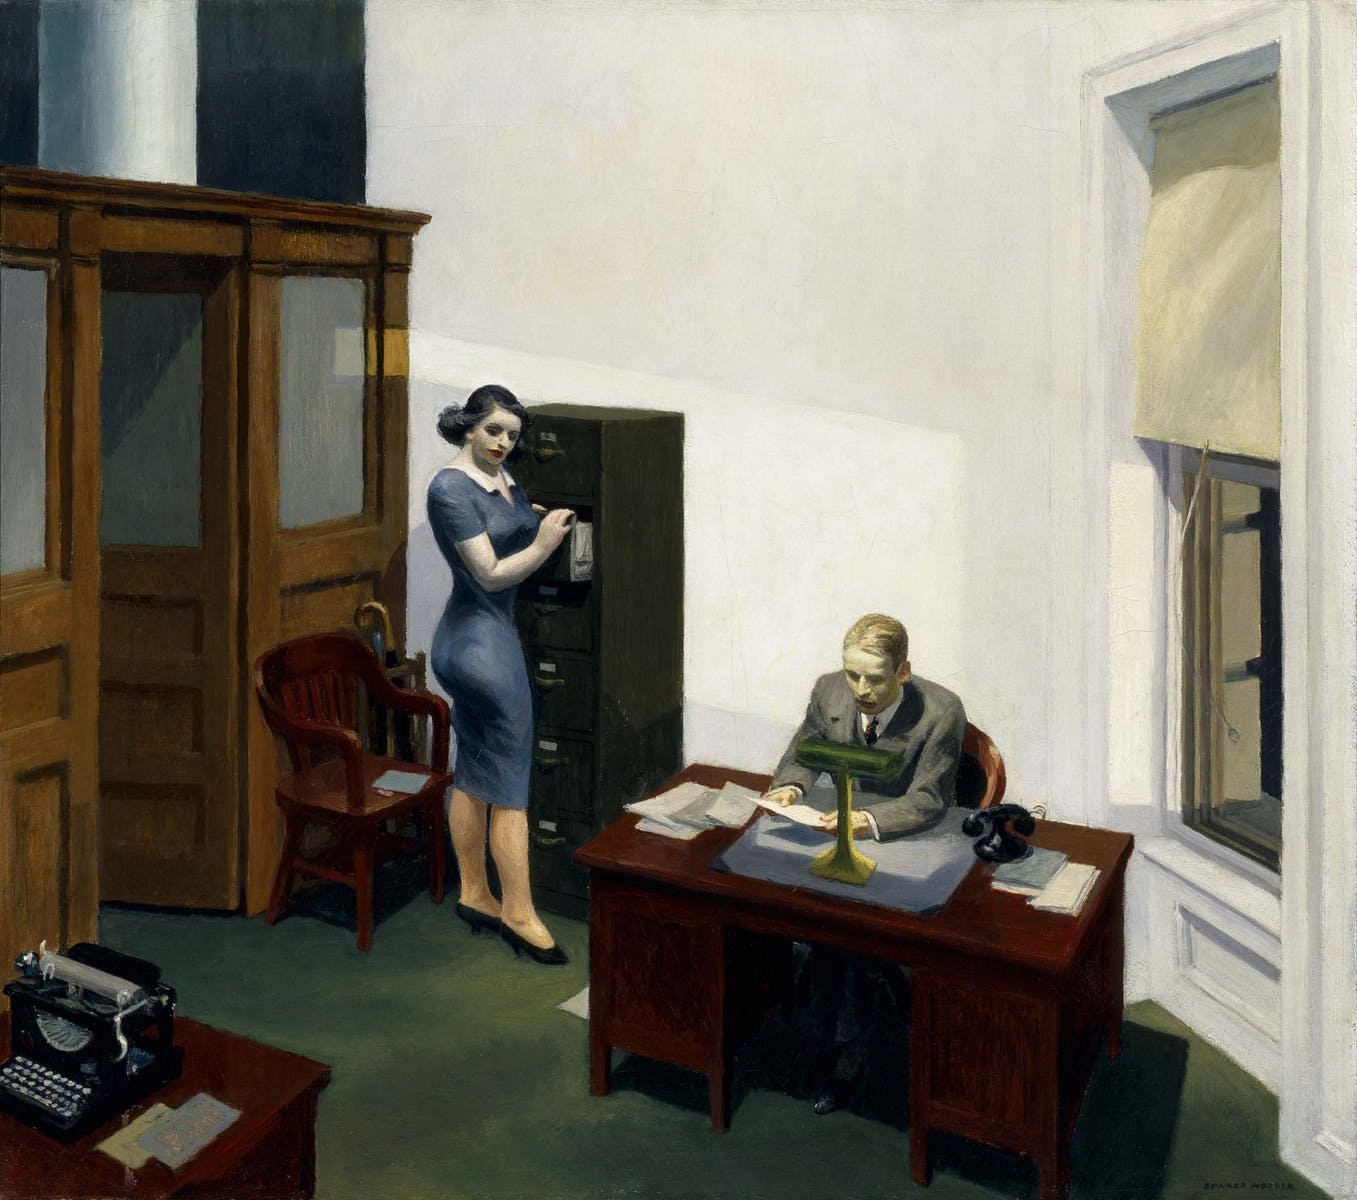 Painting by Edward Hopper of two people in an office